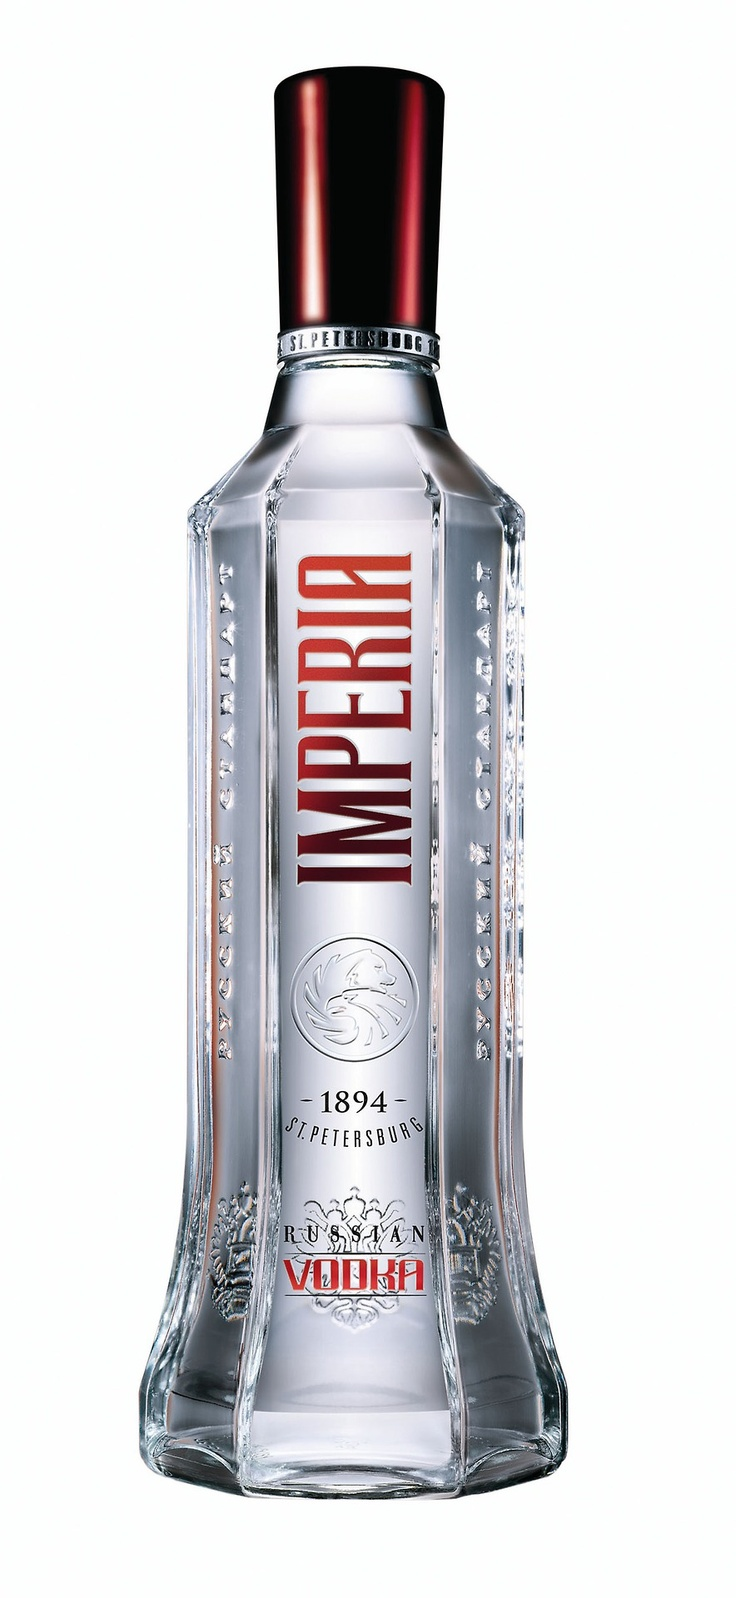 standard russian vodka entry into us Wódka vodka eyes us comeback after acquisition march 7th, 2017  russian standard vodka makes debut in iceland february 21st, 2017  tito's celebrates entry into 100th market.